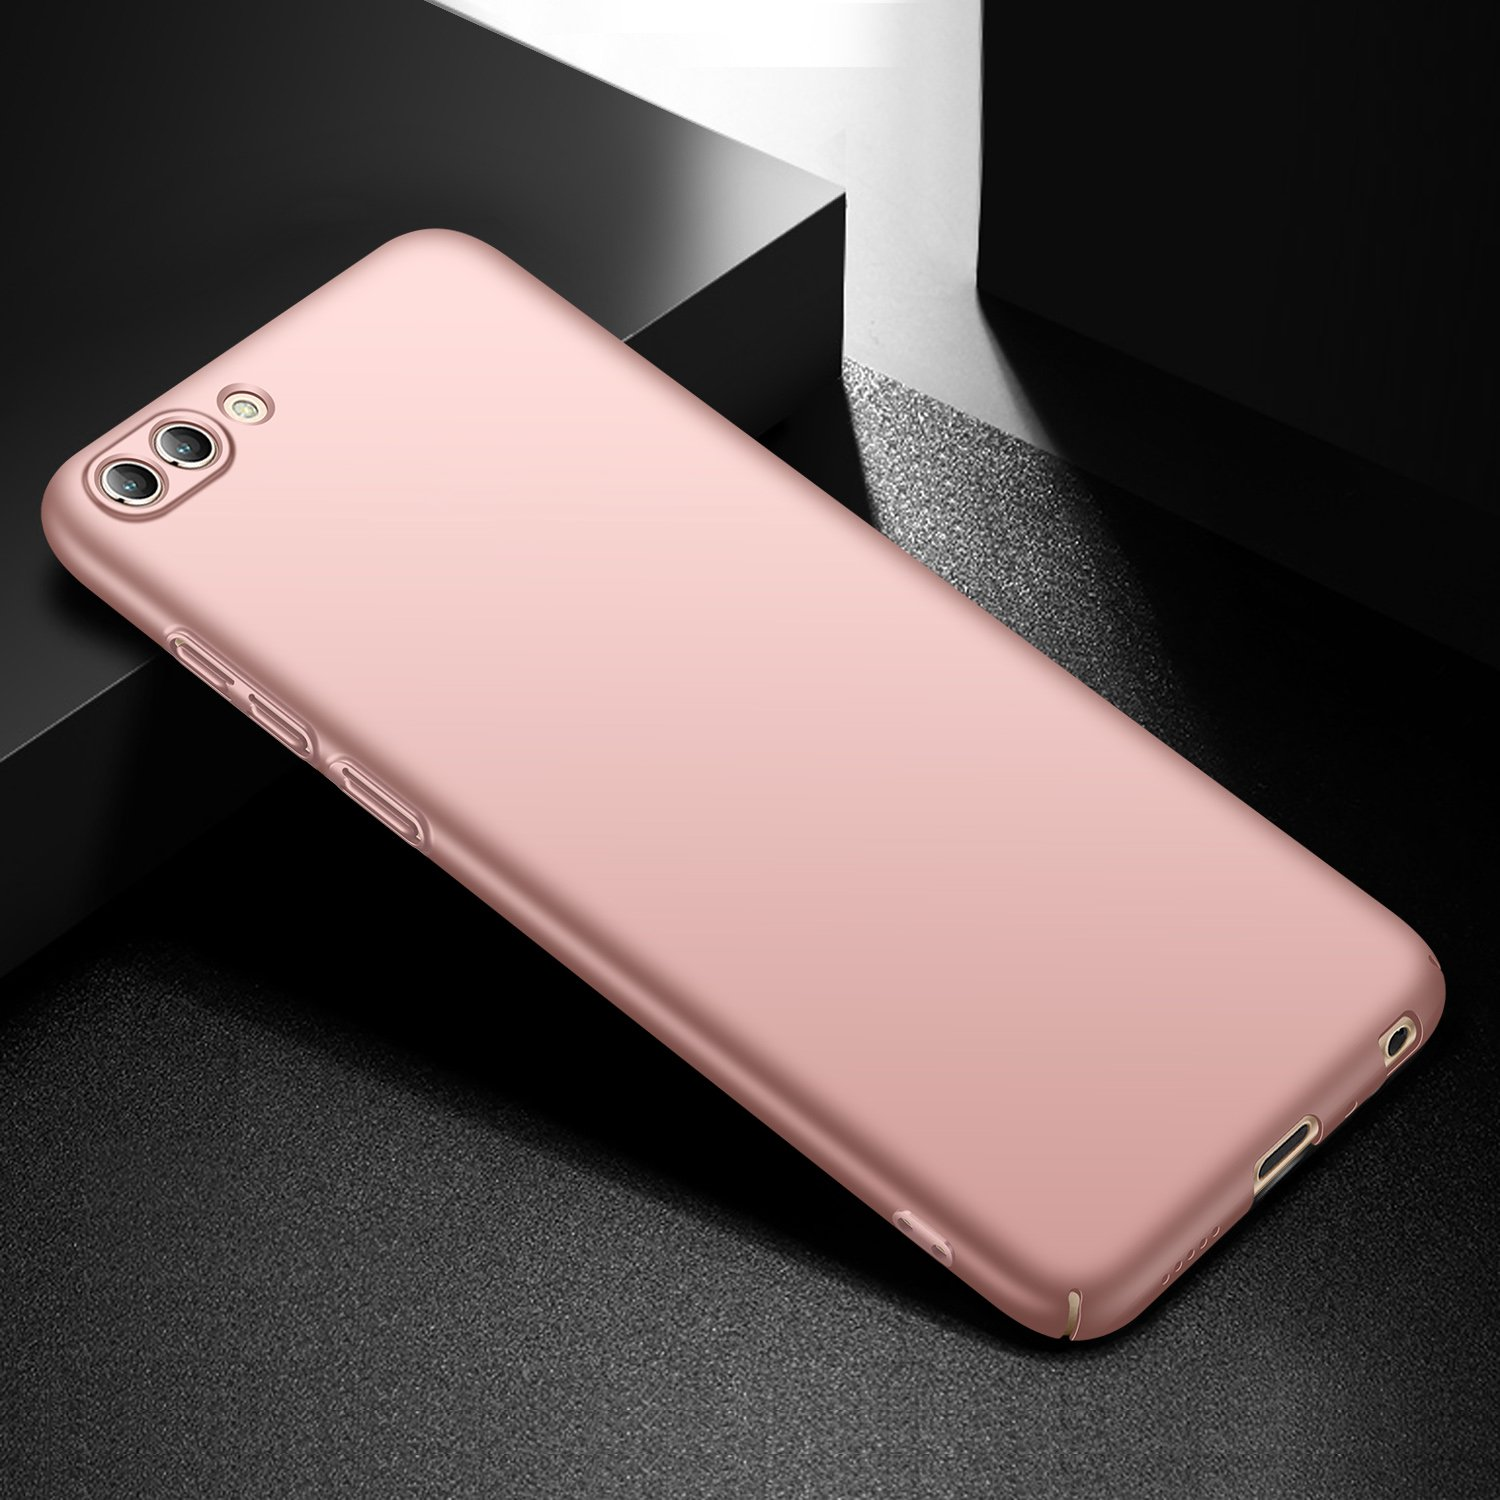 anccer Funda Huawei Honor View 10 Serie Colorida Ligera Funda Huawei Honor V10 Oro Rosa Liso Ultra-Delgado Anti-rasgu/ños Estuche para Carcasa Huawei Honor View 10 // Honor V10